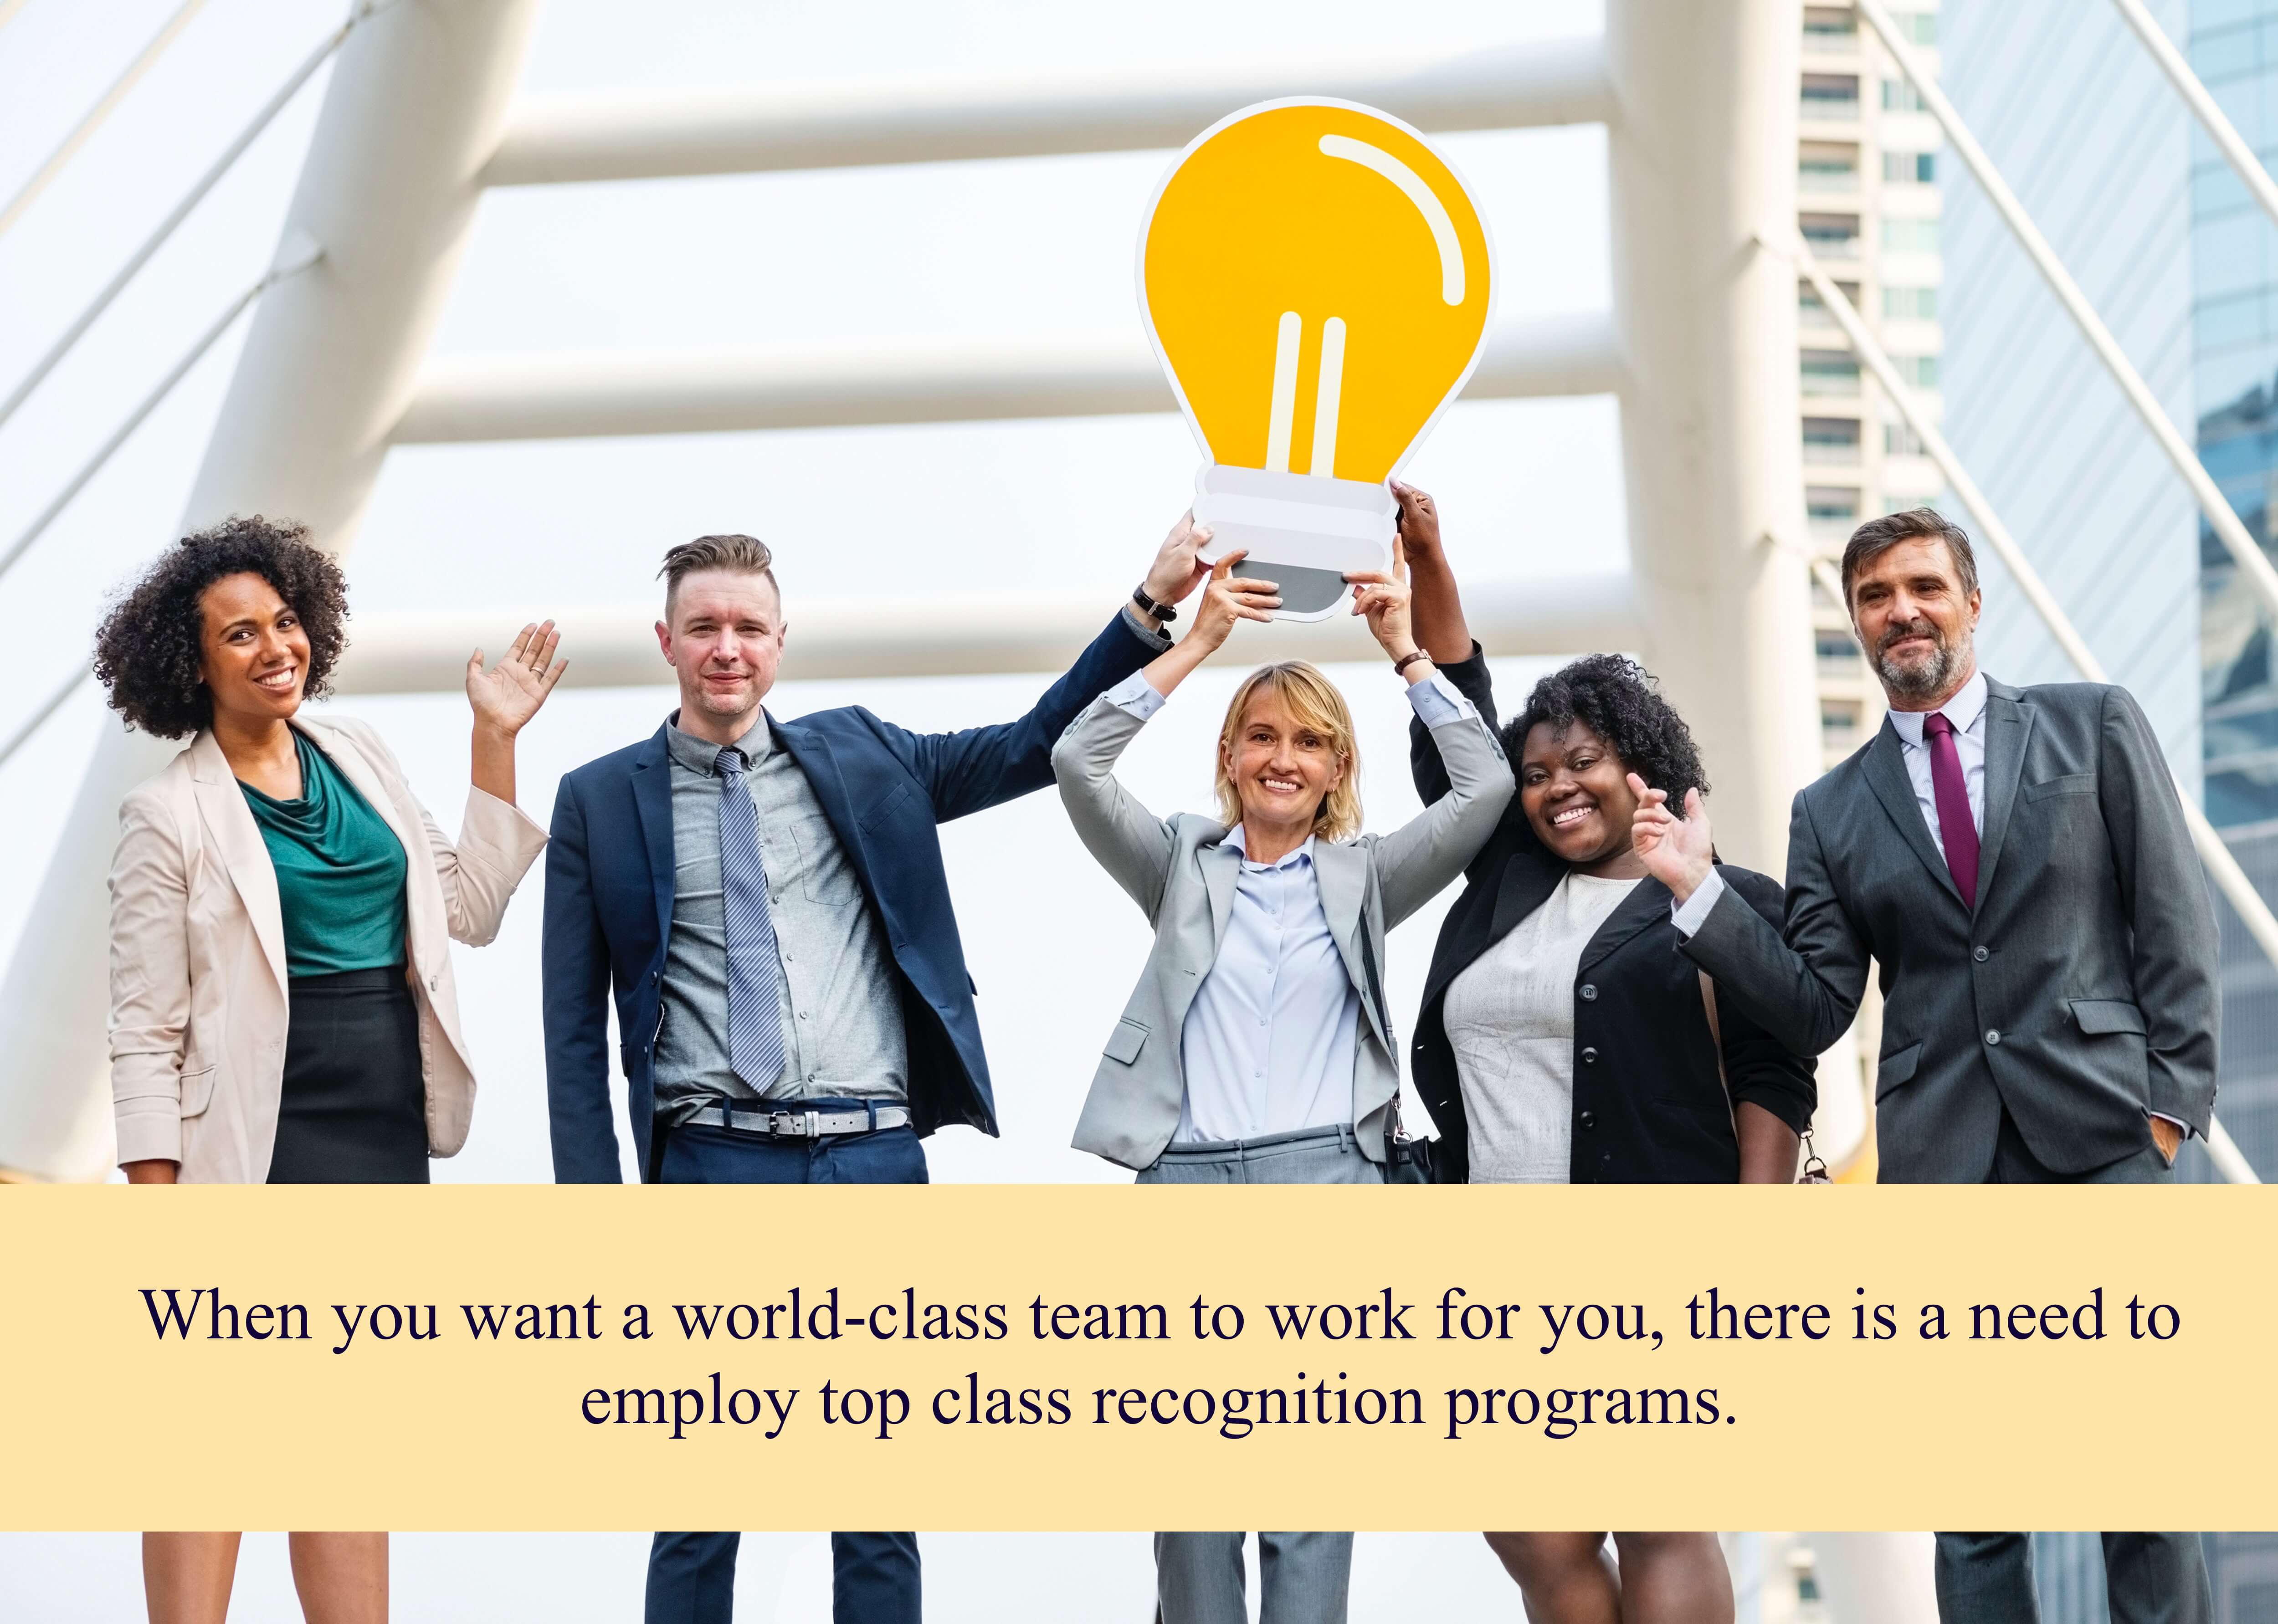 When you want a world-class team to work for you, there is a need to employ top class recognition programs.